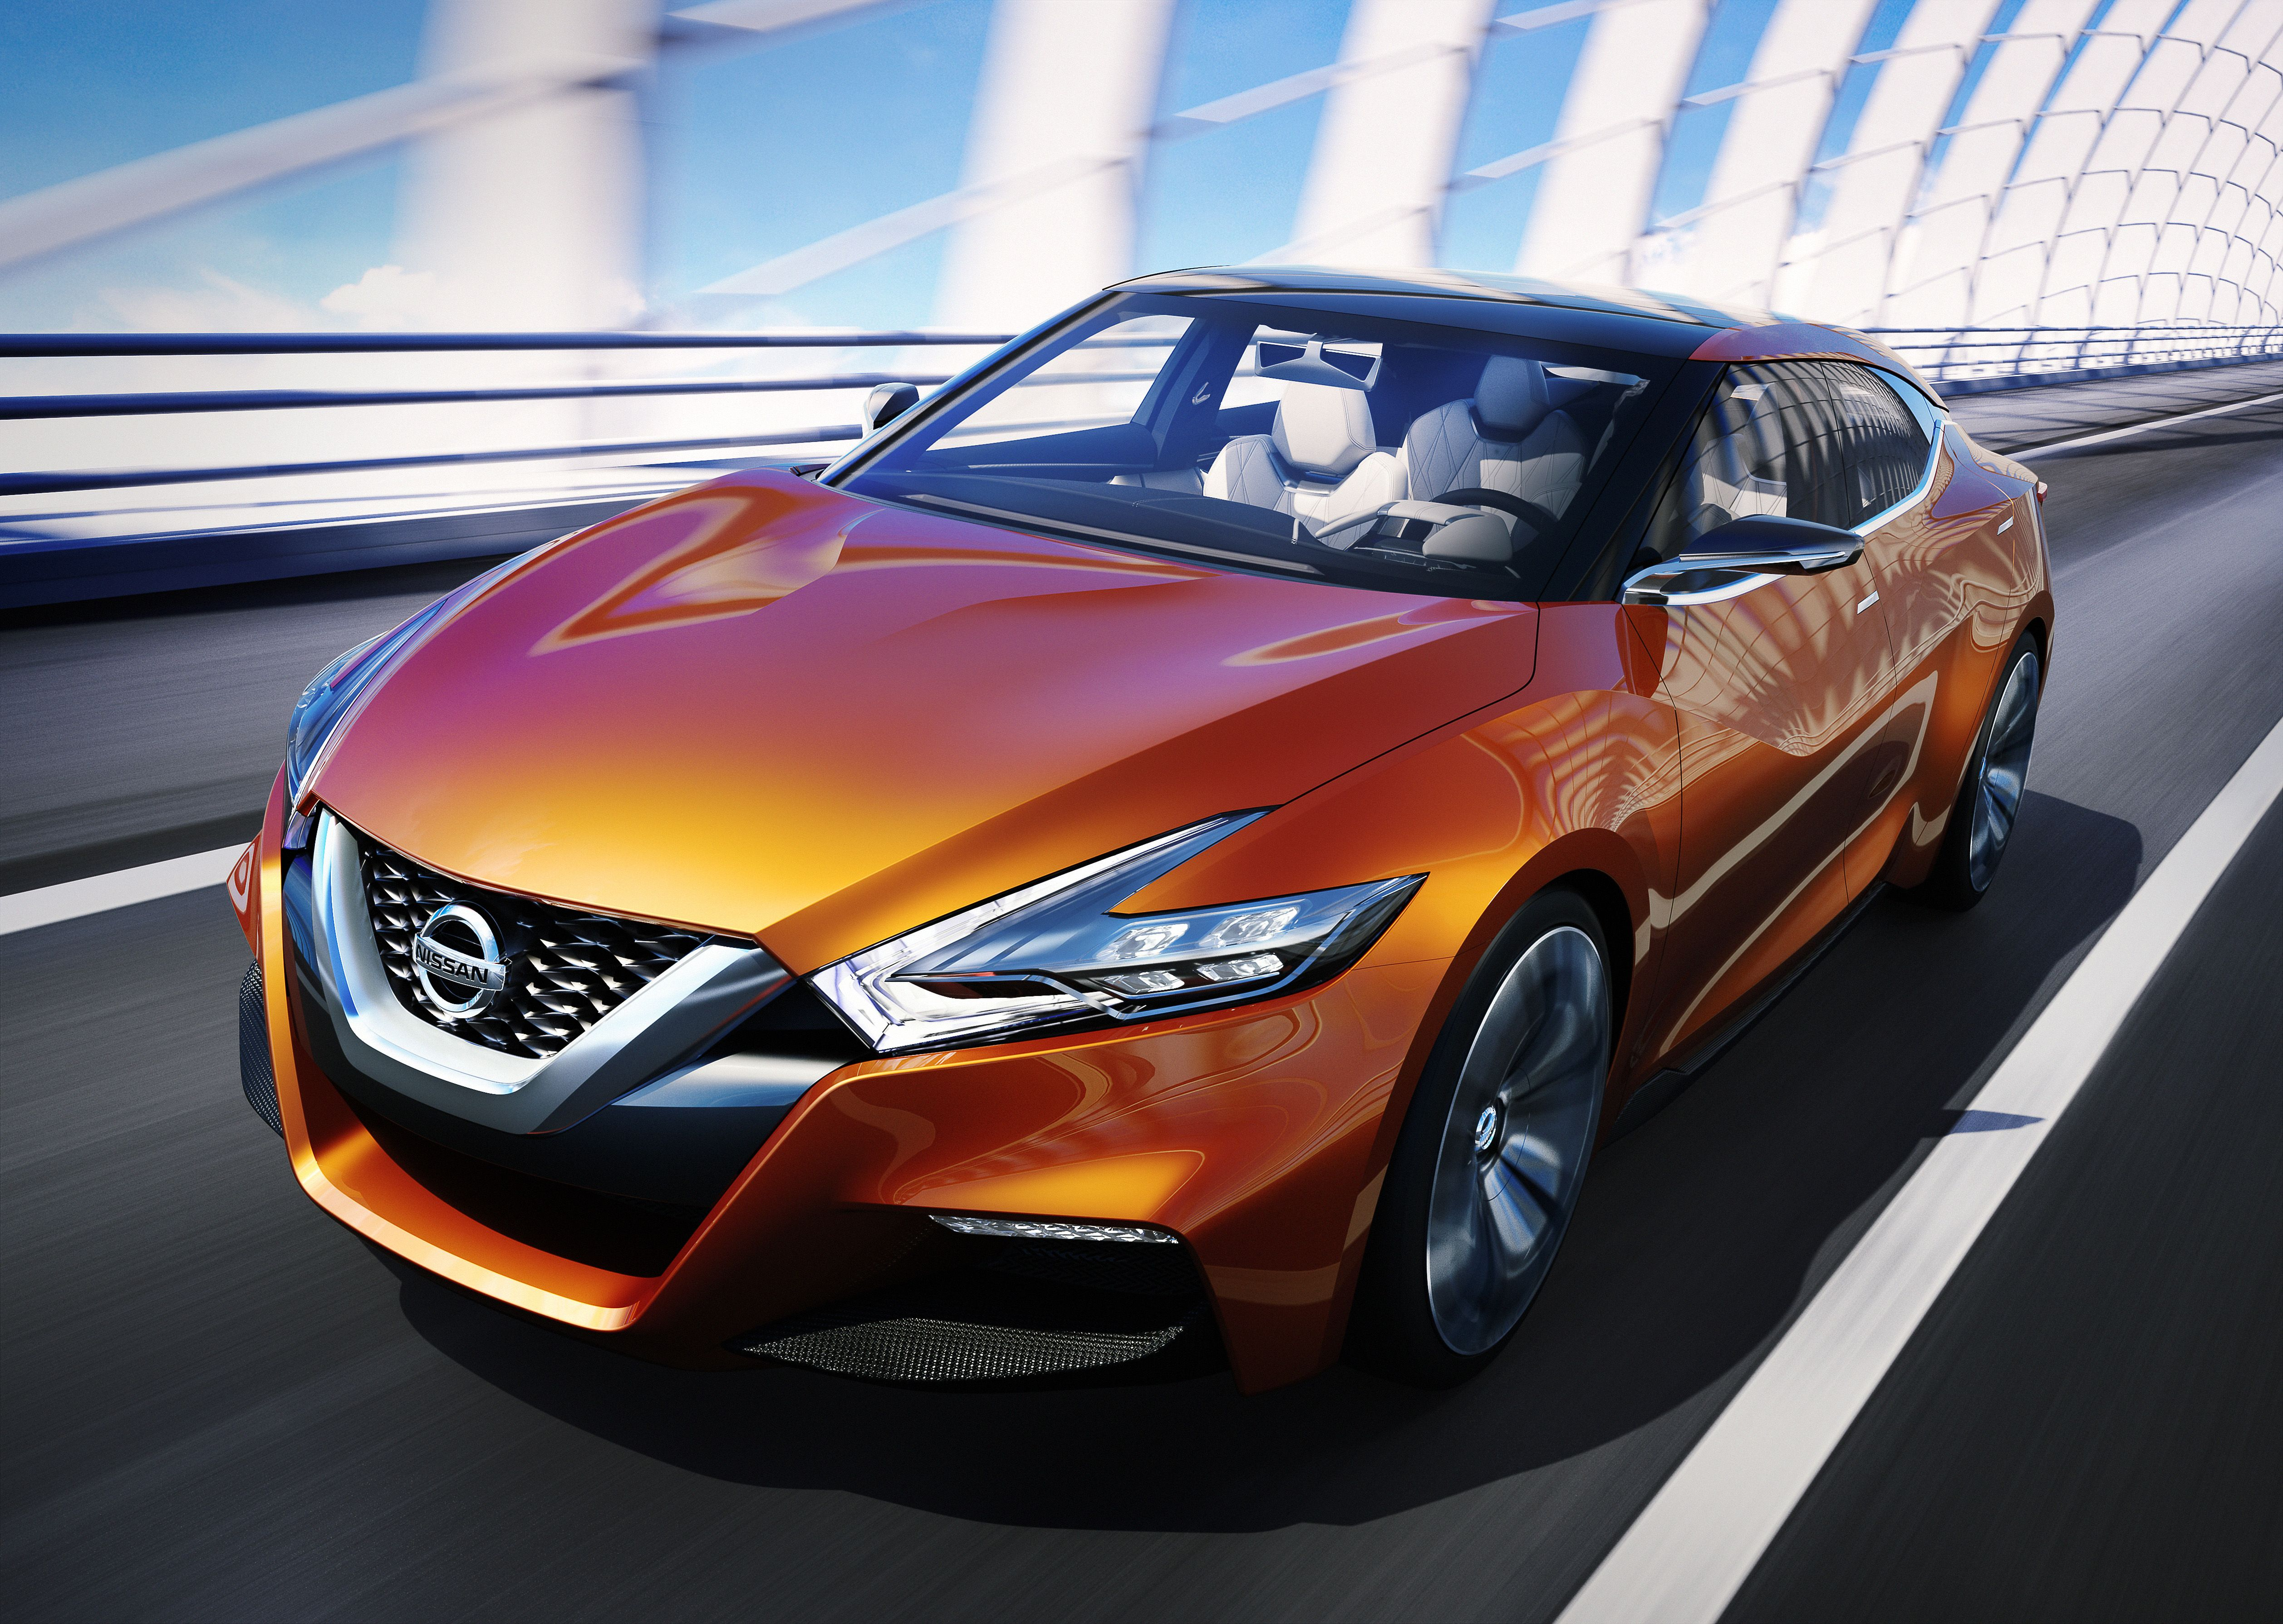 The Nissan Sport Sedan Concept Emphasizes Next Generation Design And Sporty Style A Floating Roof V Motion Front End Boomerang Shaped Headlights